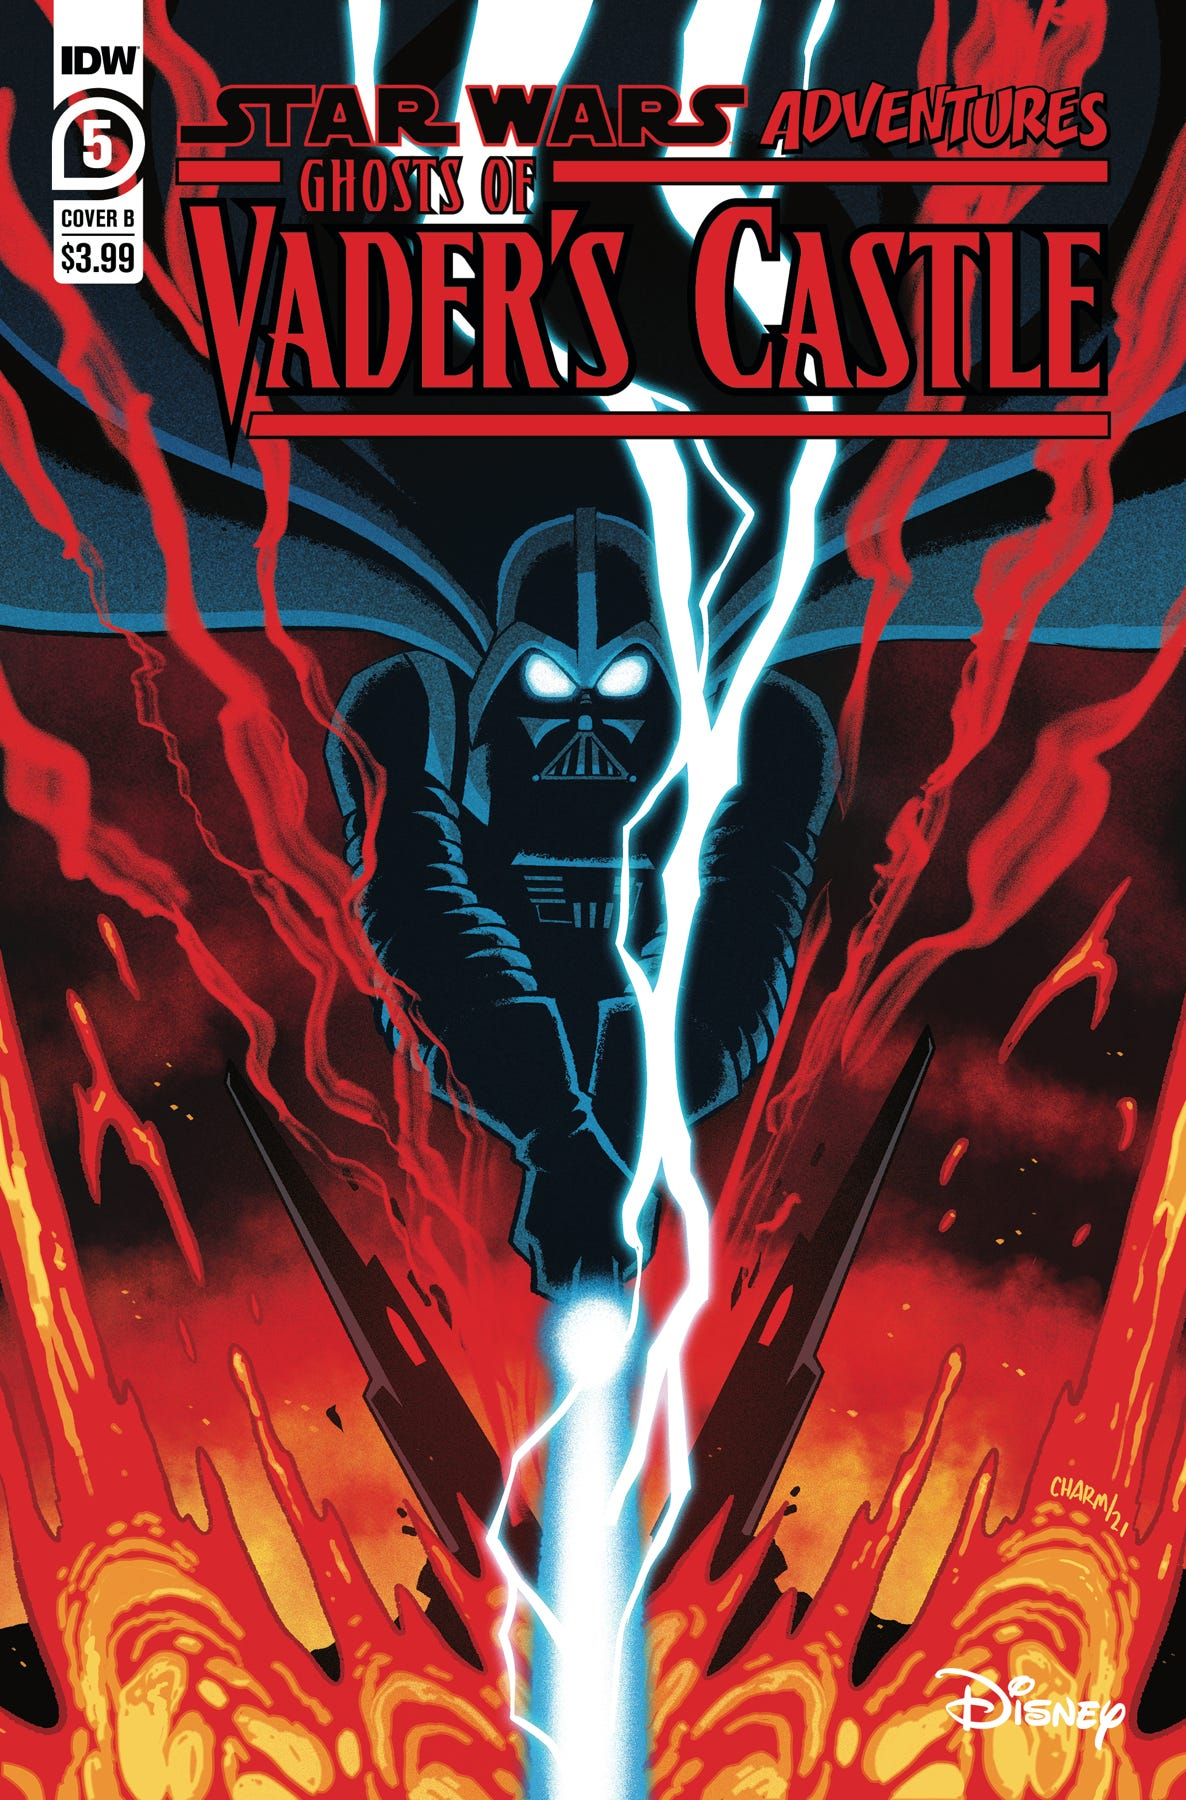 Star Wars Adv Ghost Vaders Castle #5 (of 5) (Cover B - Charm)